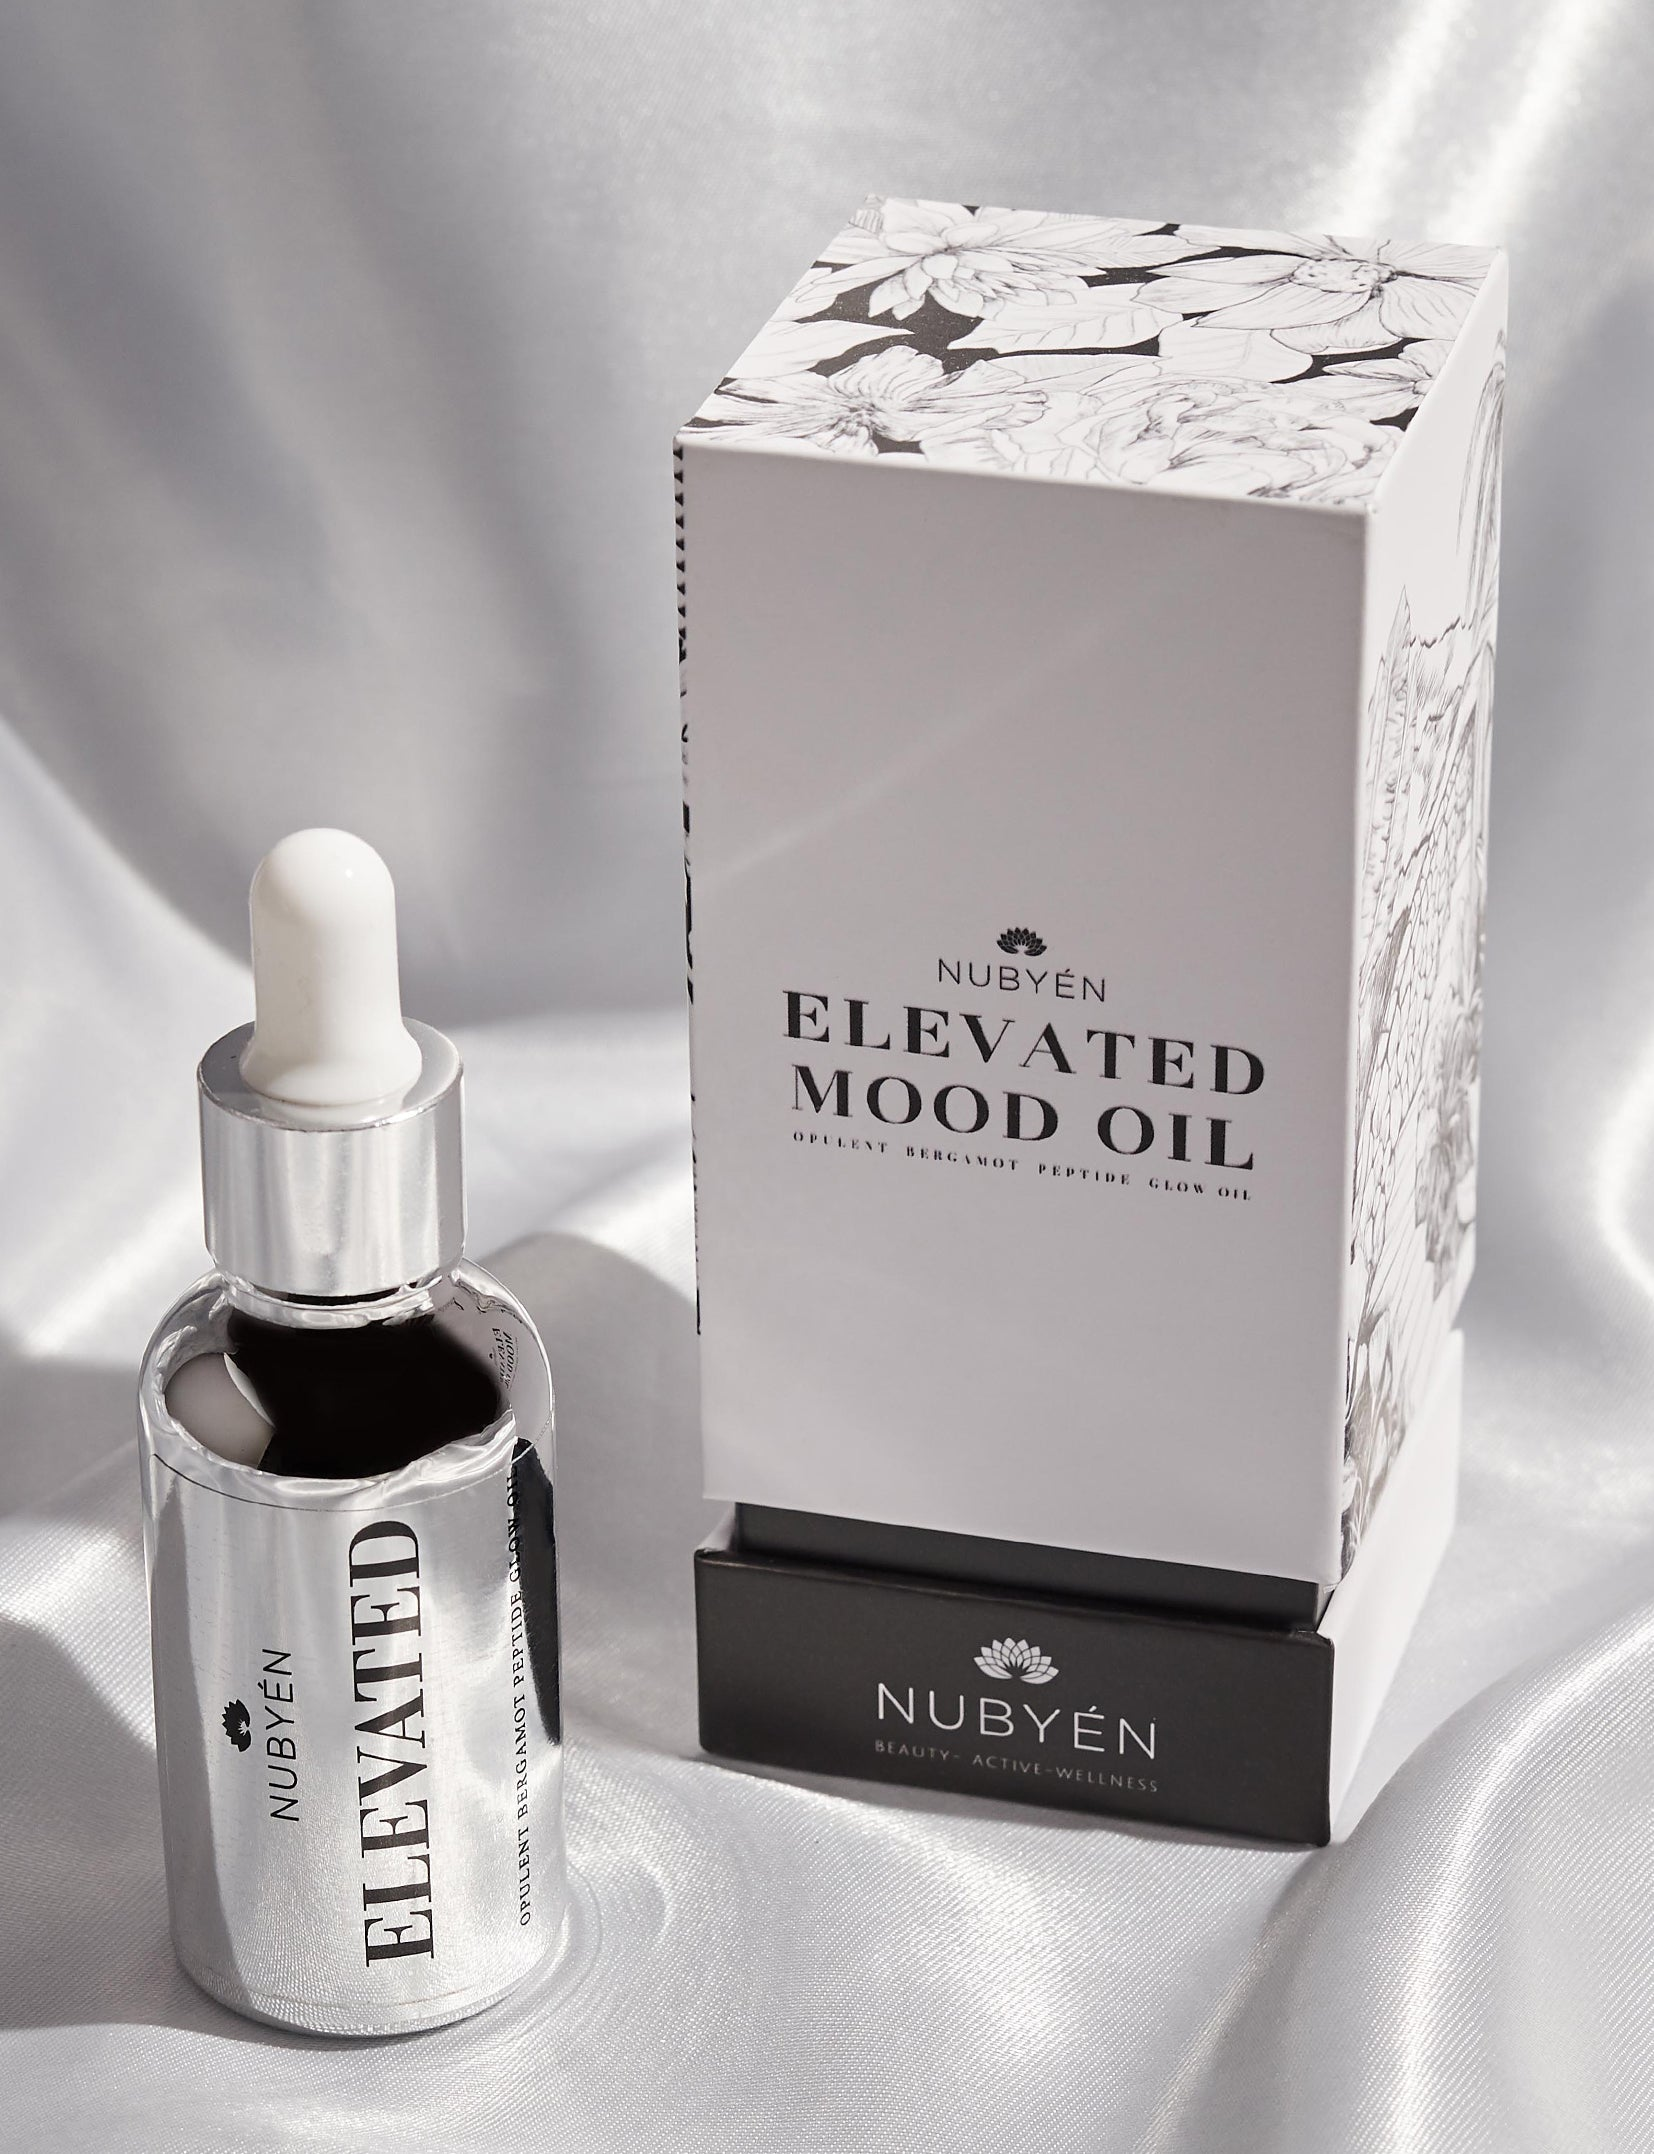 Nubyen Elevated mood oil, nubyen wellness, nubyen pillow spray, nubyen mood lifter, nubyen , nubyen beauty, nubyen mood , mood enhancer , best selling pillow spray, vegan pillow spray